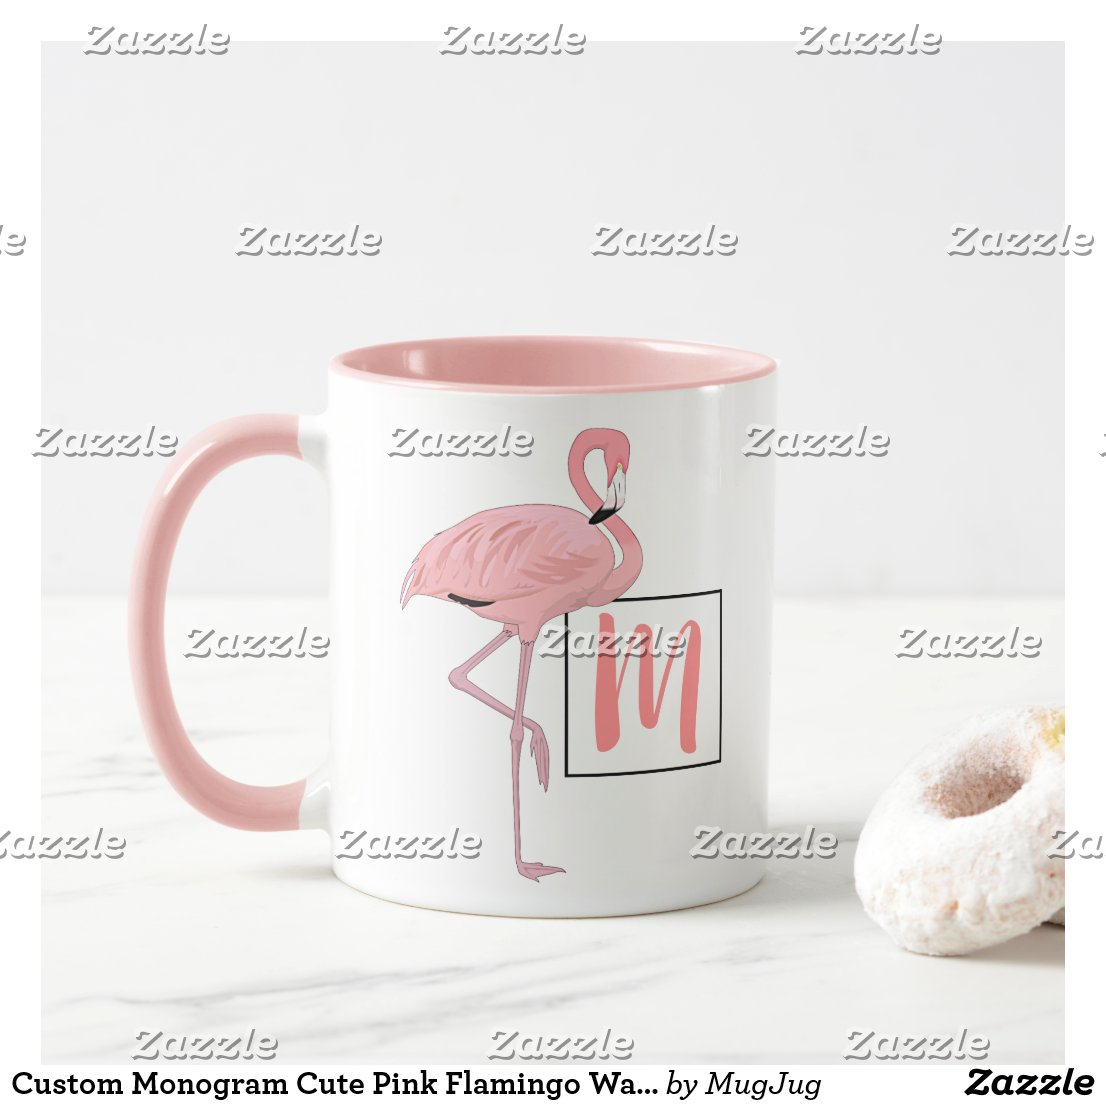 Custom Monogram Cute Pink Flamingo Watercolor Art Mug